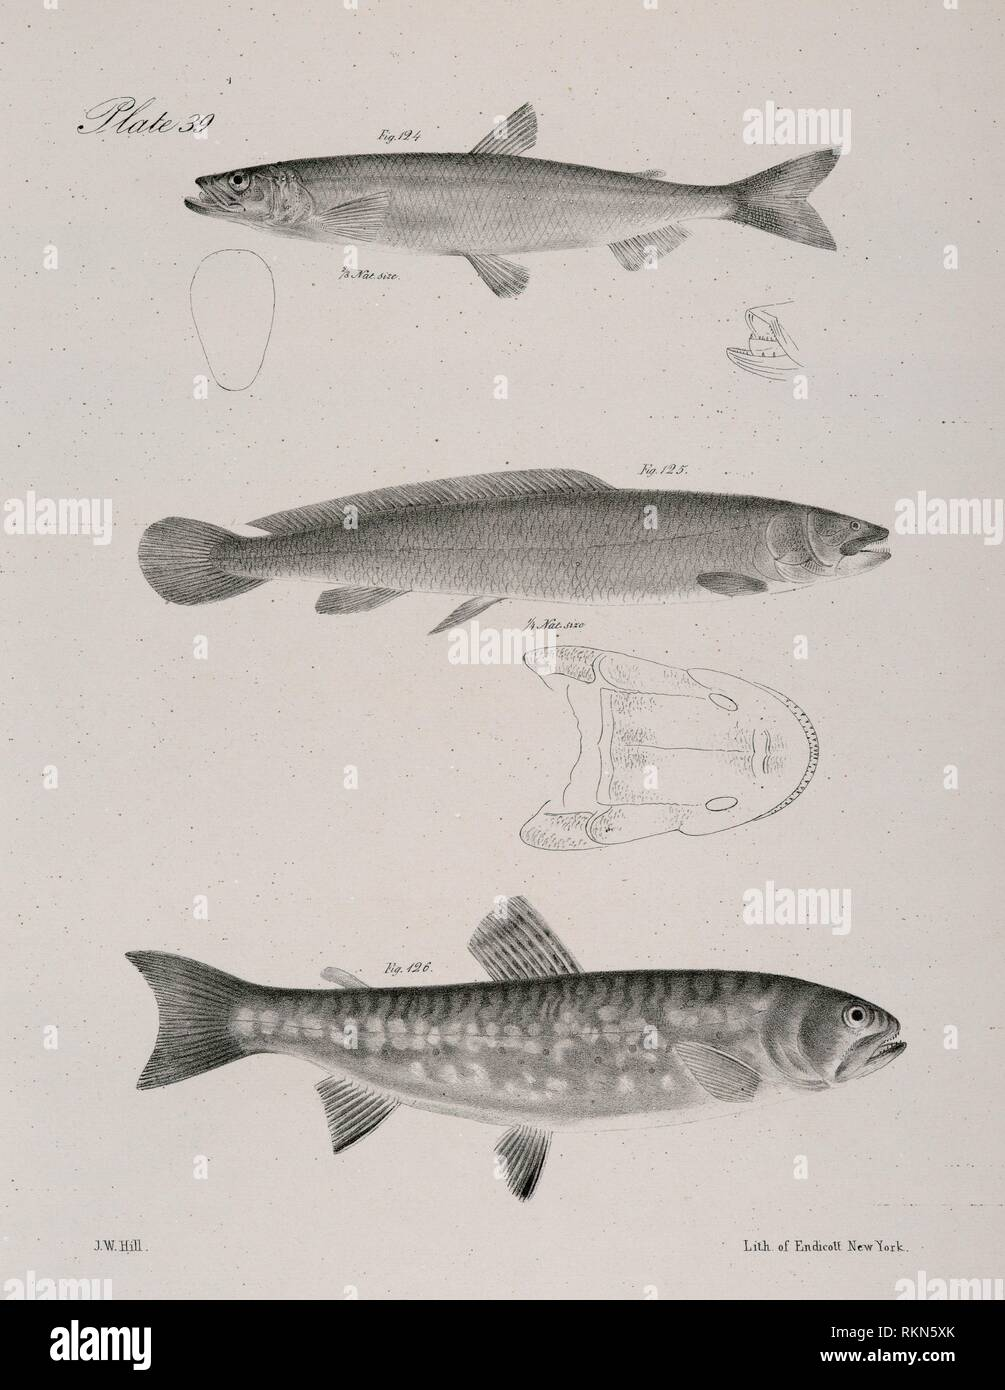 124. The American Smelt (Osmerus viridescens). 125. The Western Mud-fish (Amia occidentalis). 126. The Red-bellied Trout ( Salmo erythrogaster). De - Stock Image